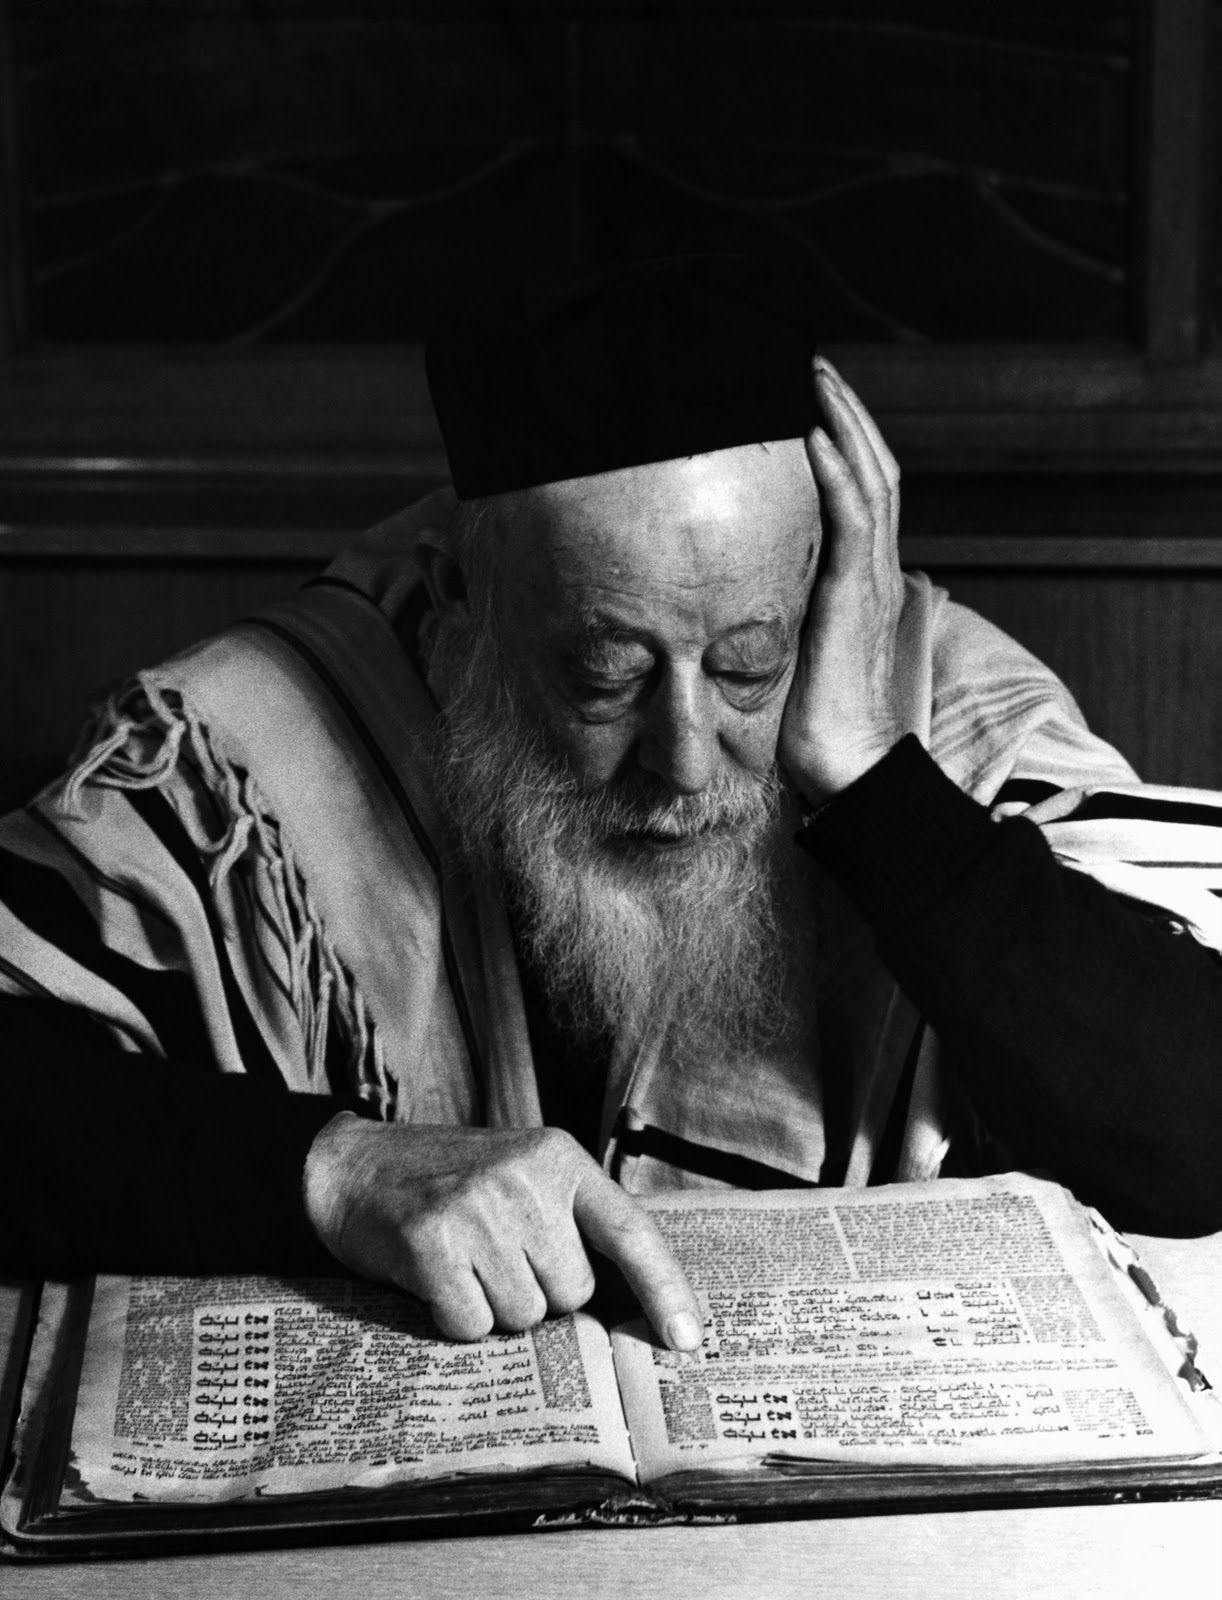 Rabbi reading the Talmud... The scariest thing Ted, Dave & co. knows... :-D